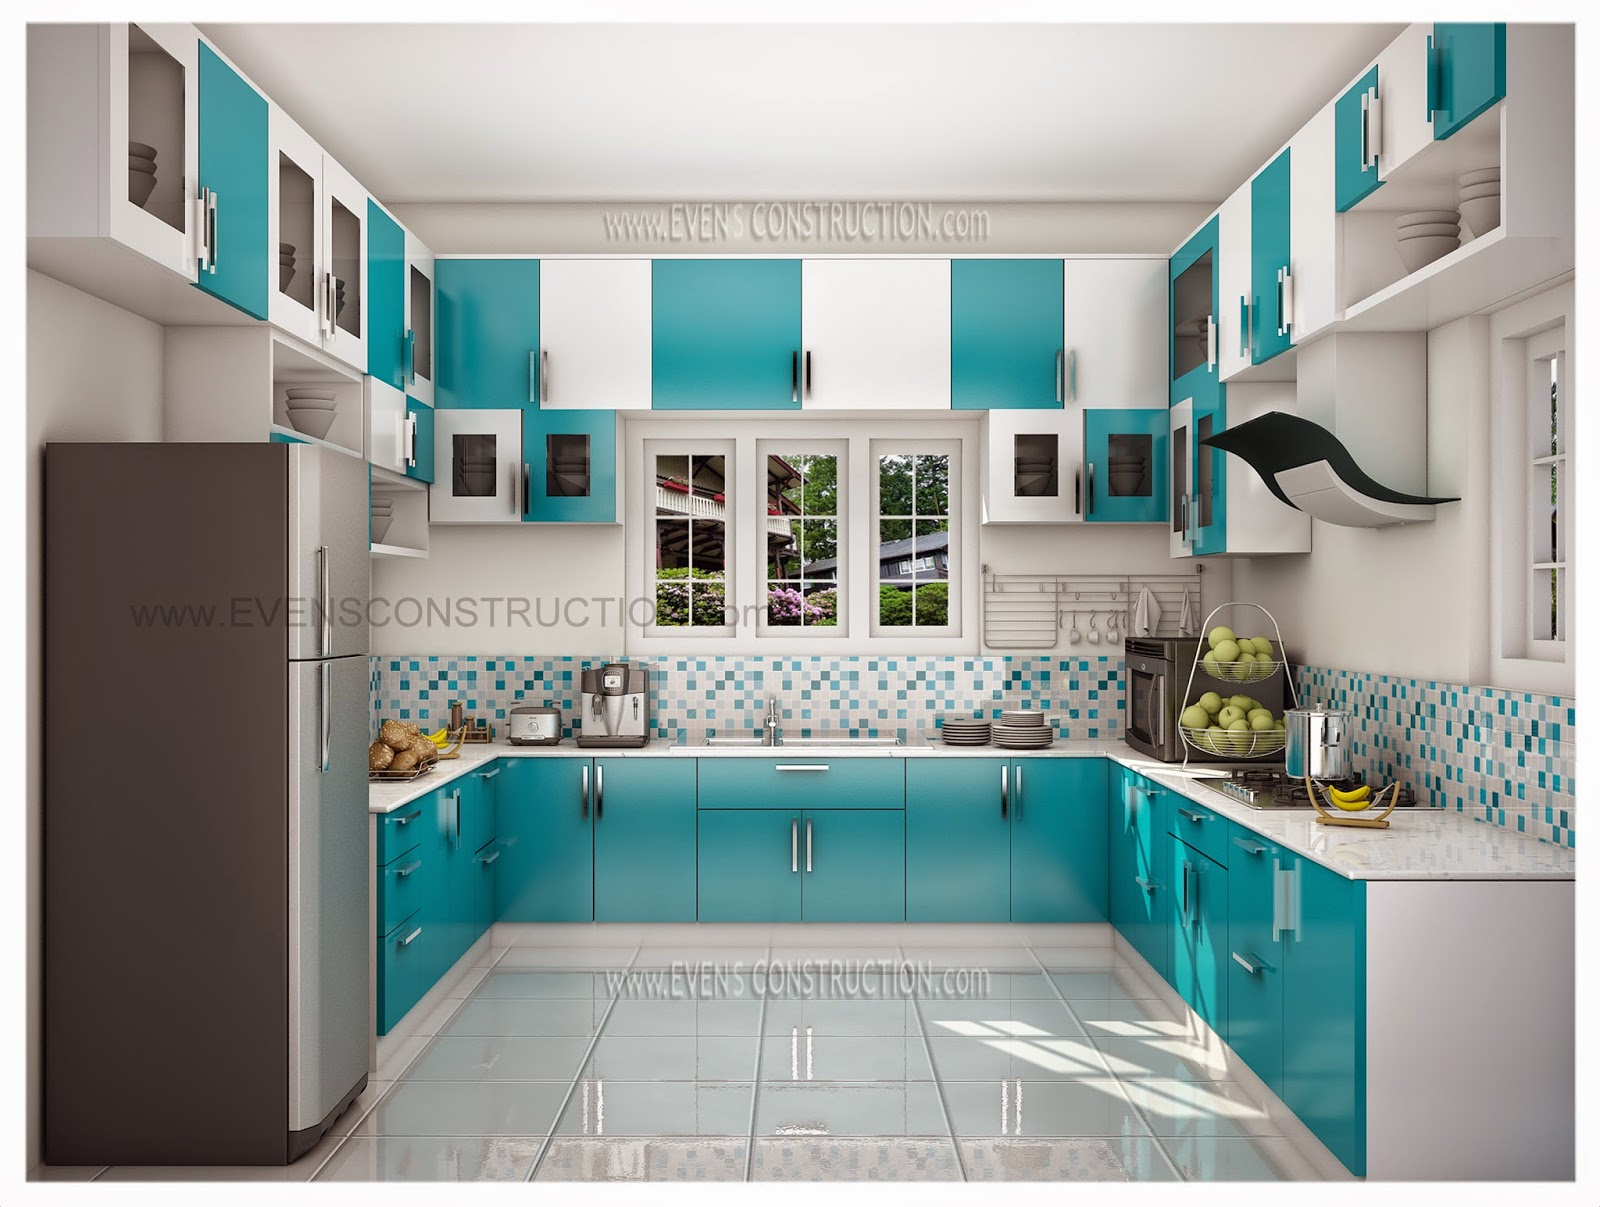 Evens construction pvt ltd beautiful kerala kitchen for Interior designs photos